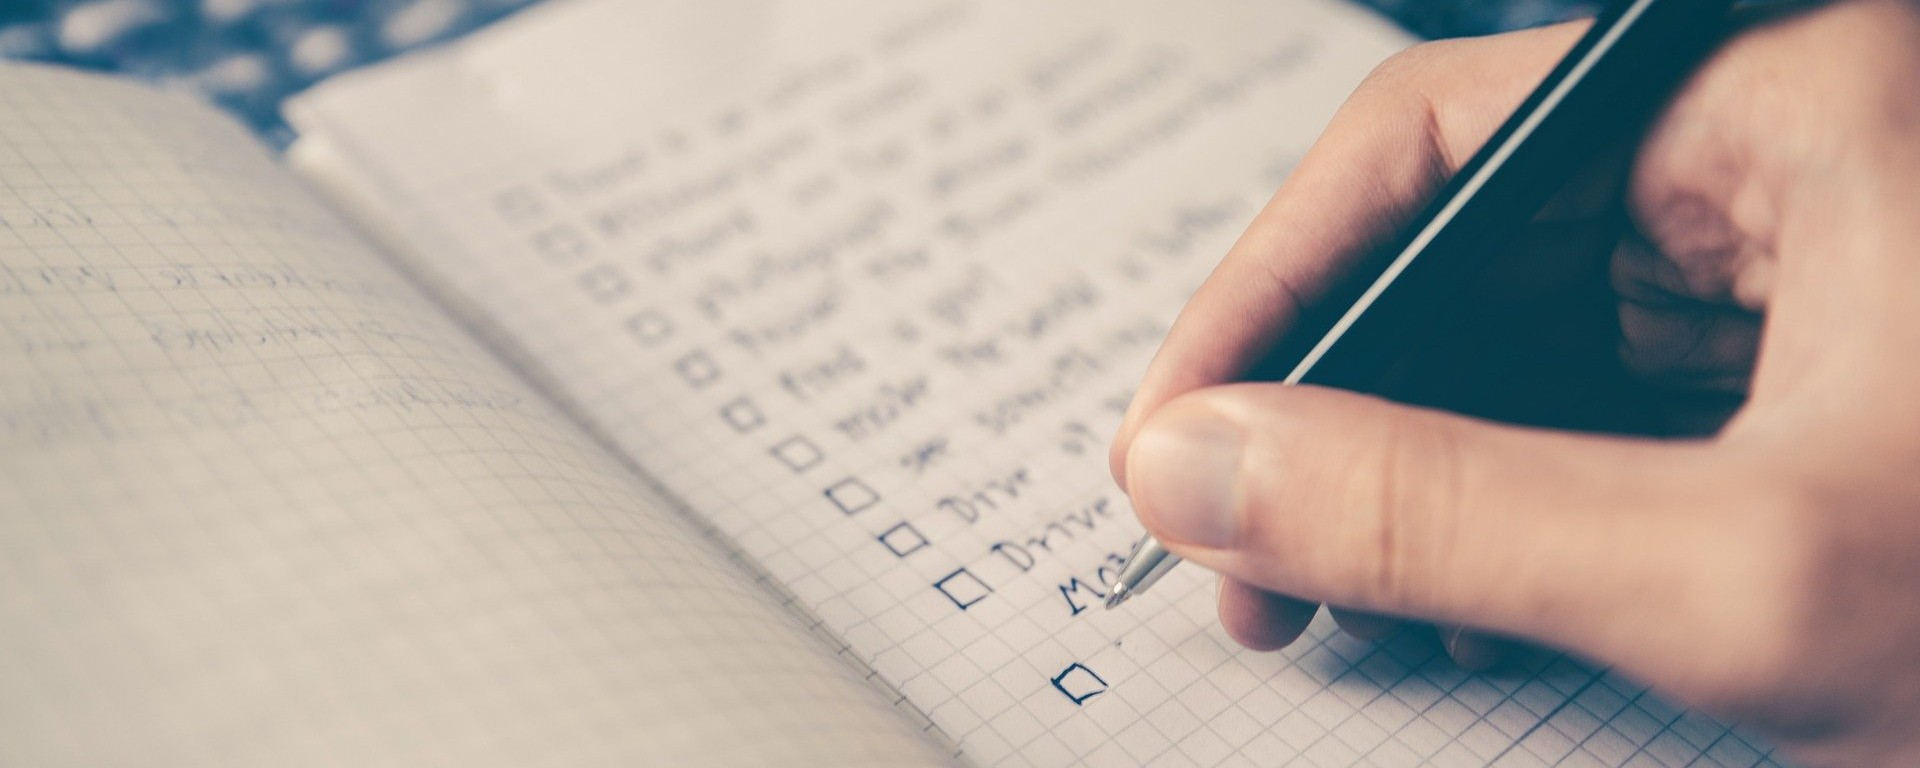 Exchange Day Checklist for property purchase